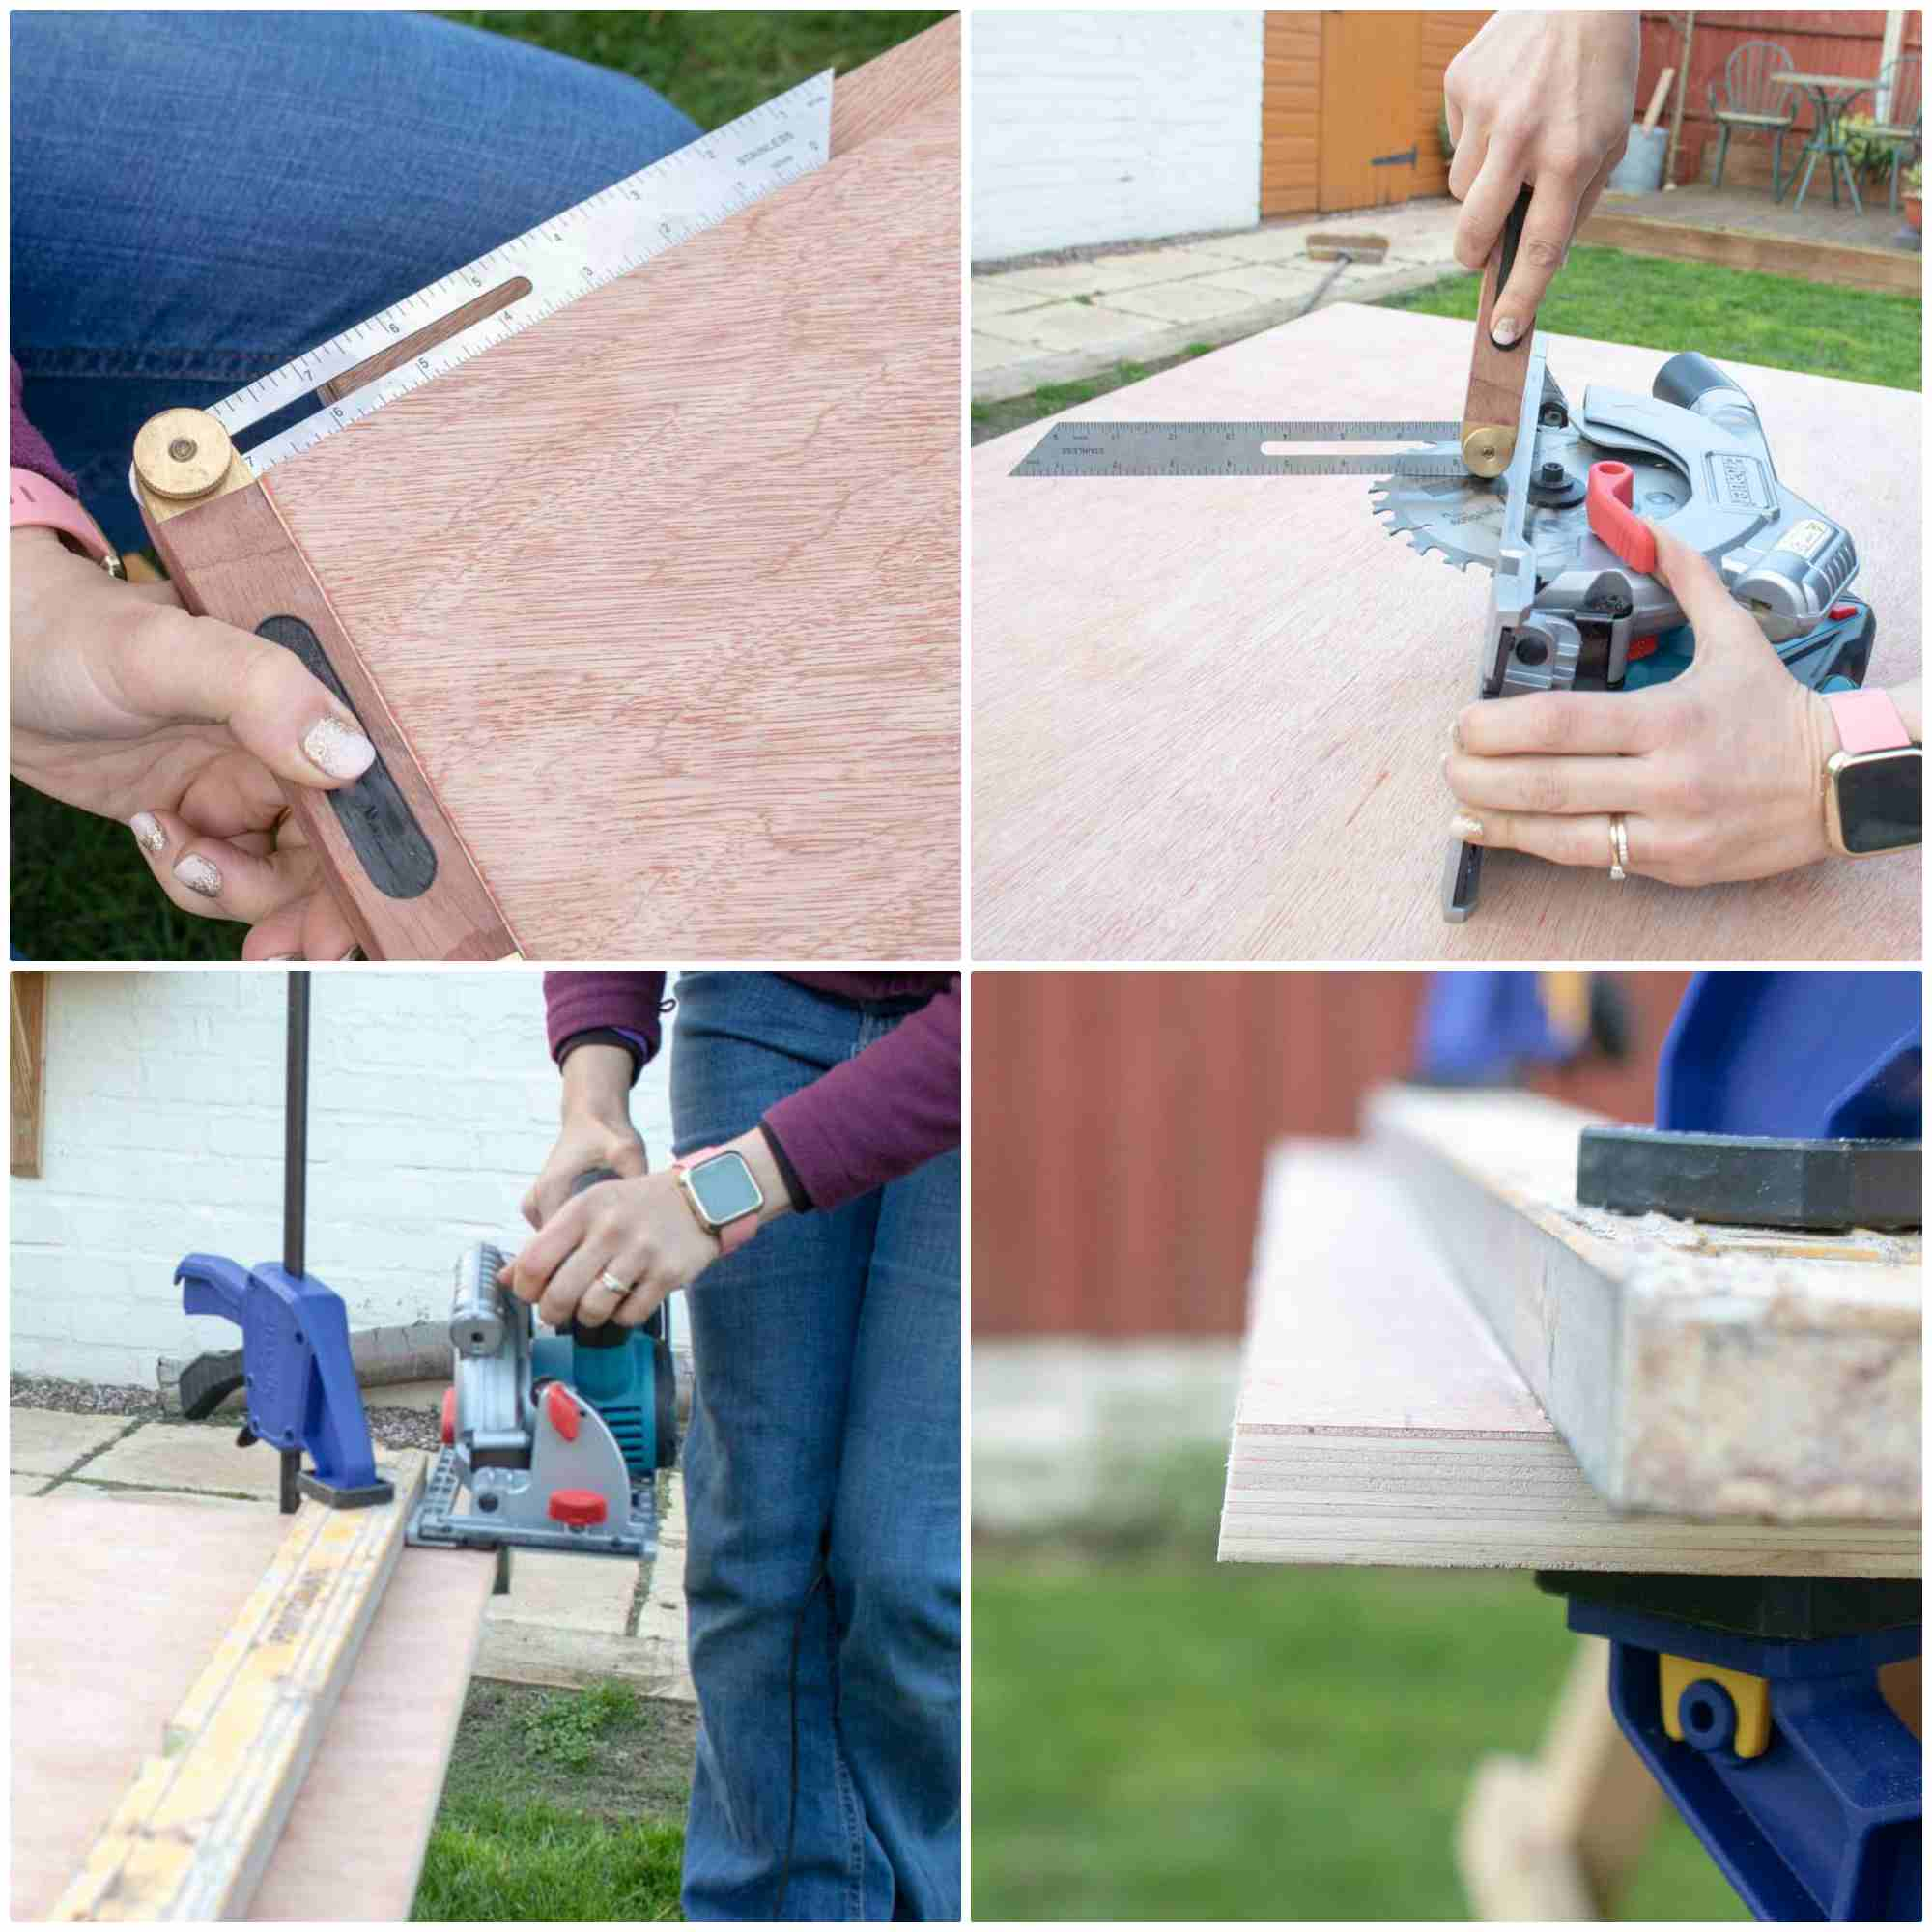 cutting bevel edge with Erbauer's cordless circular saw